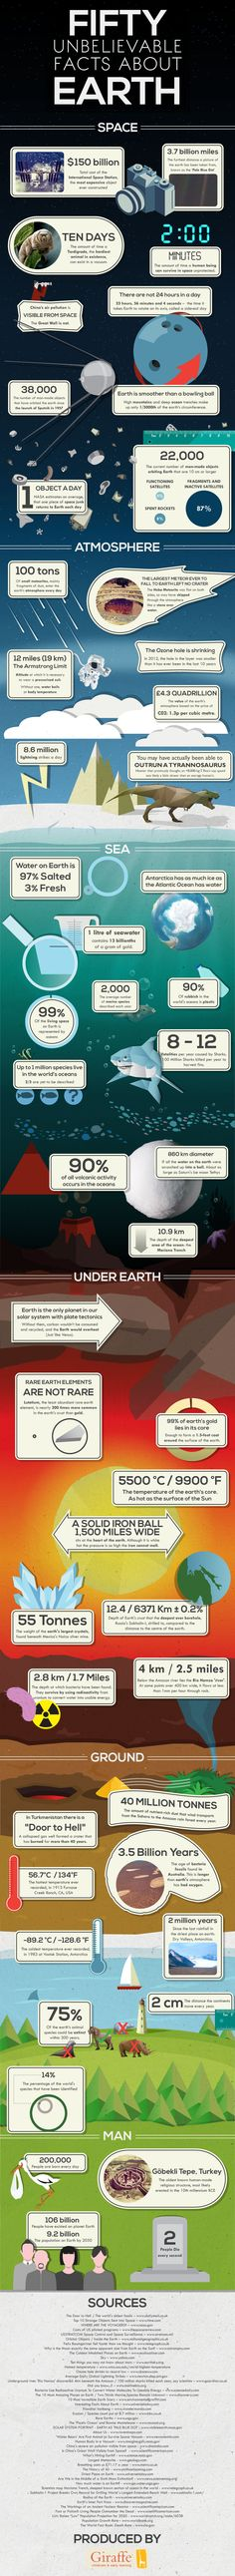 facts about Earth infographic